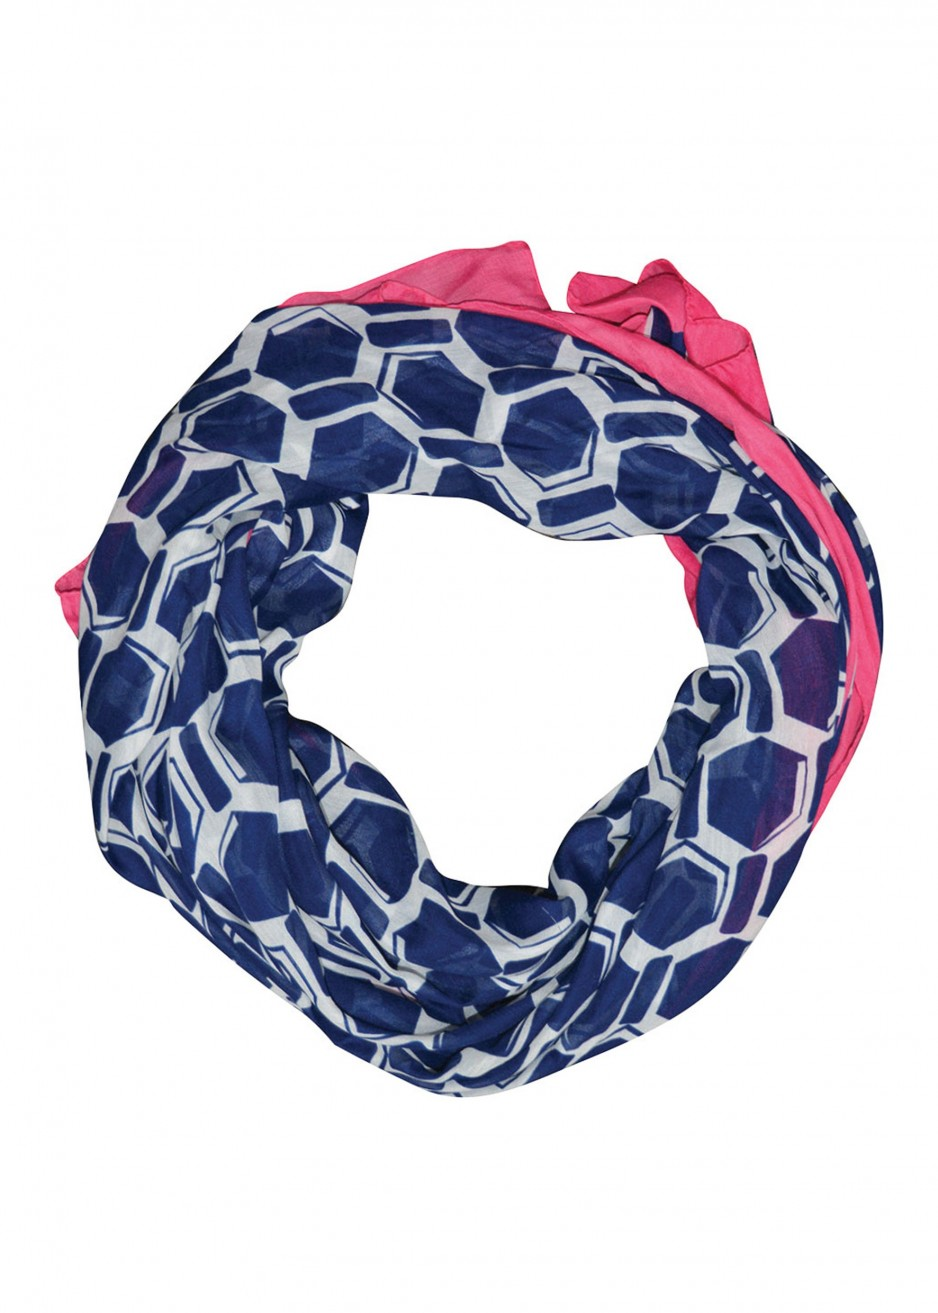 WOMENS VOILE PRINT SCARF